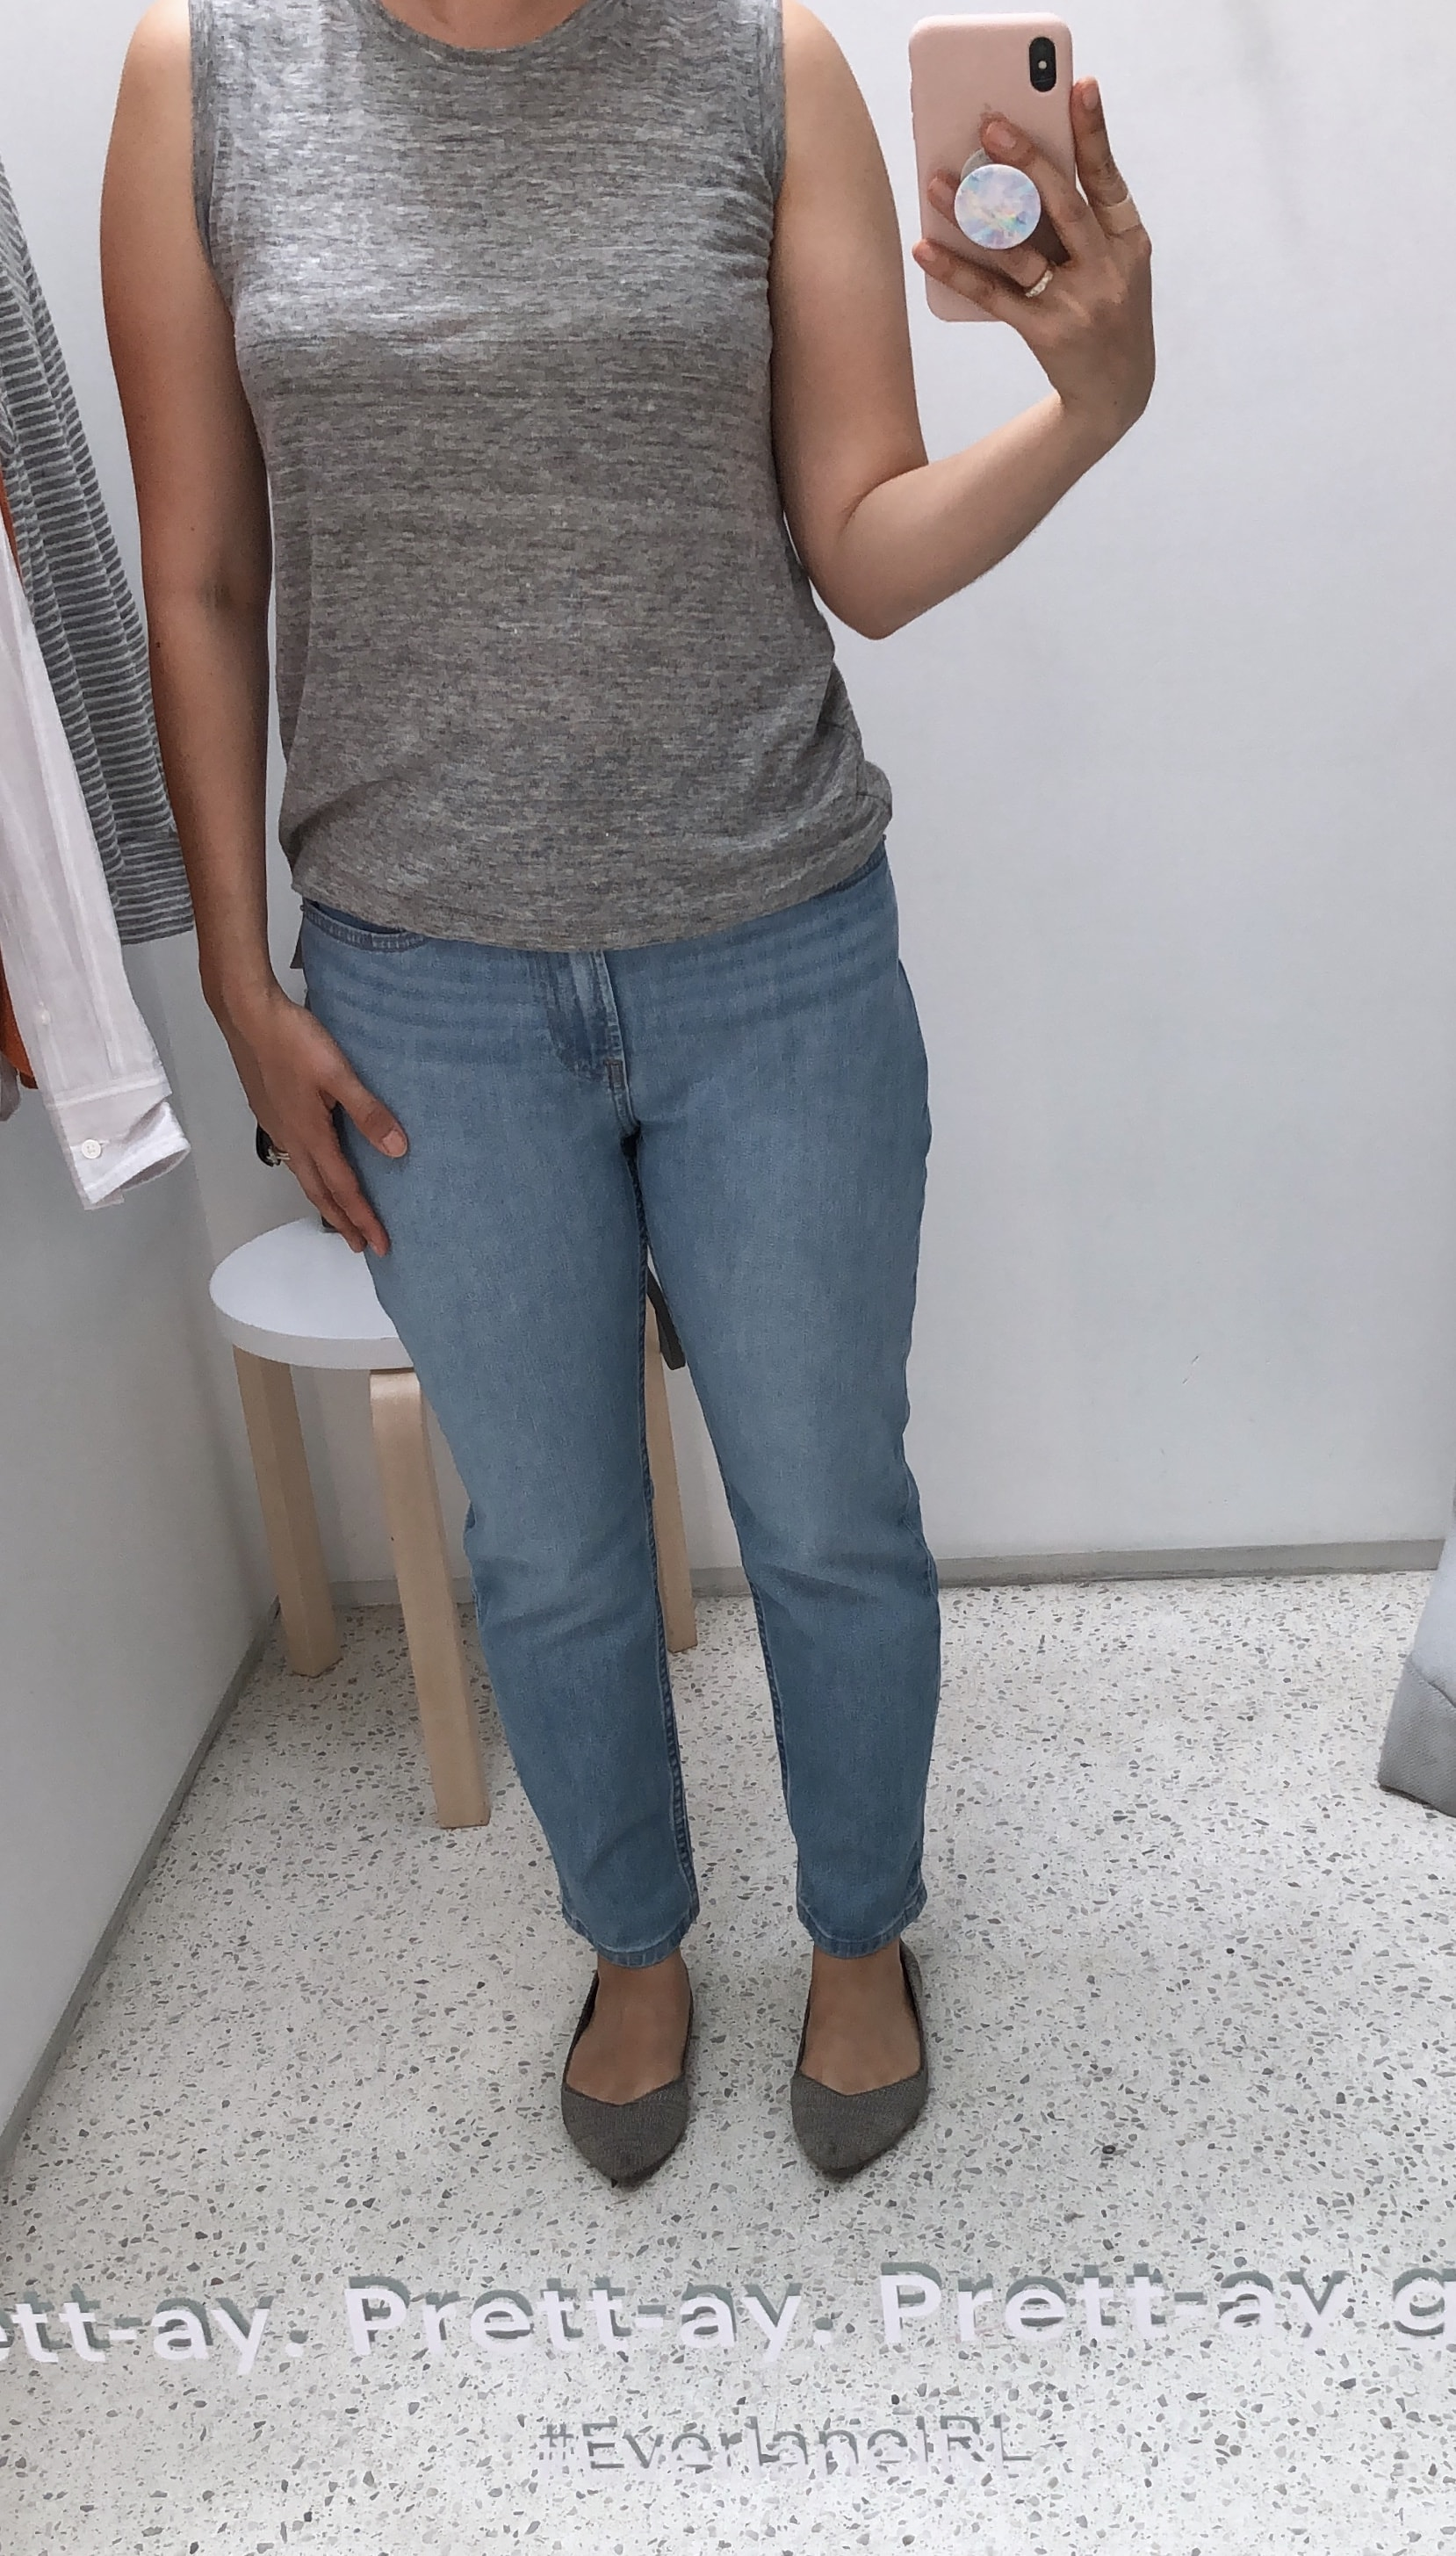 Everlane Cheeky jean review